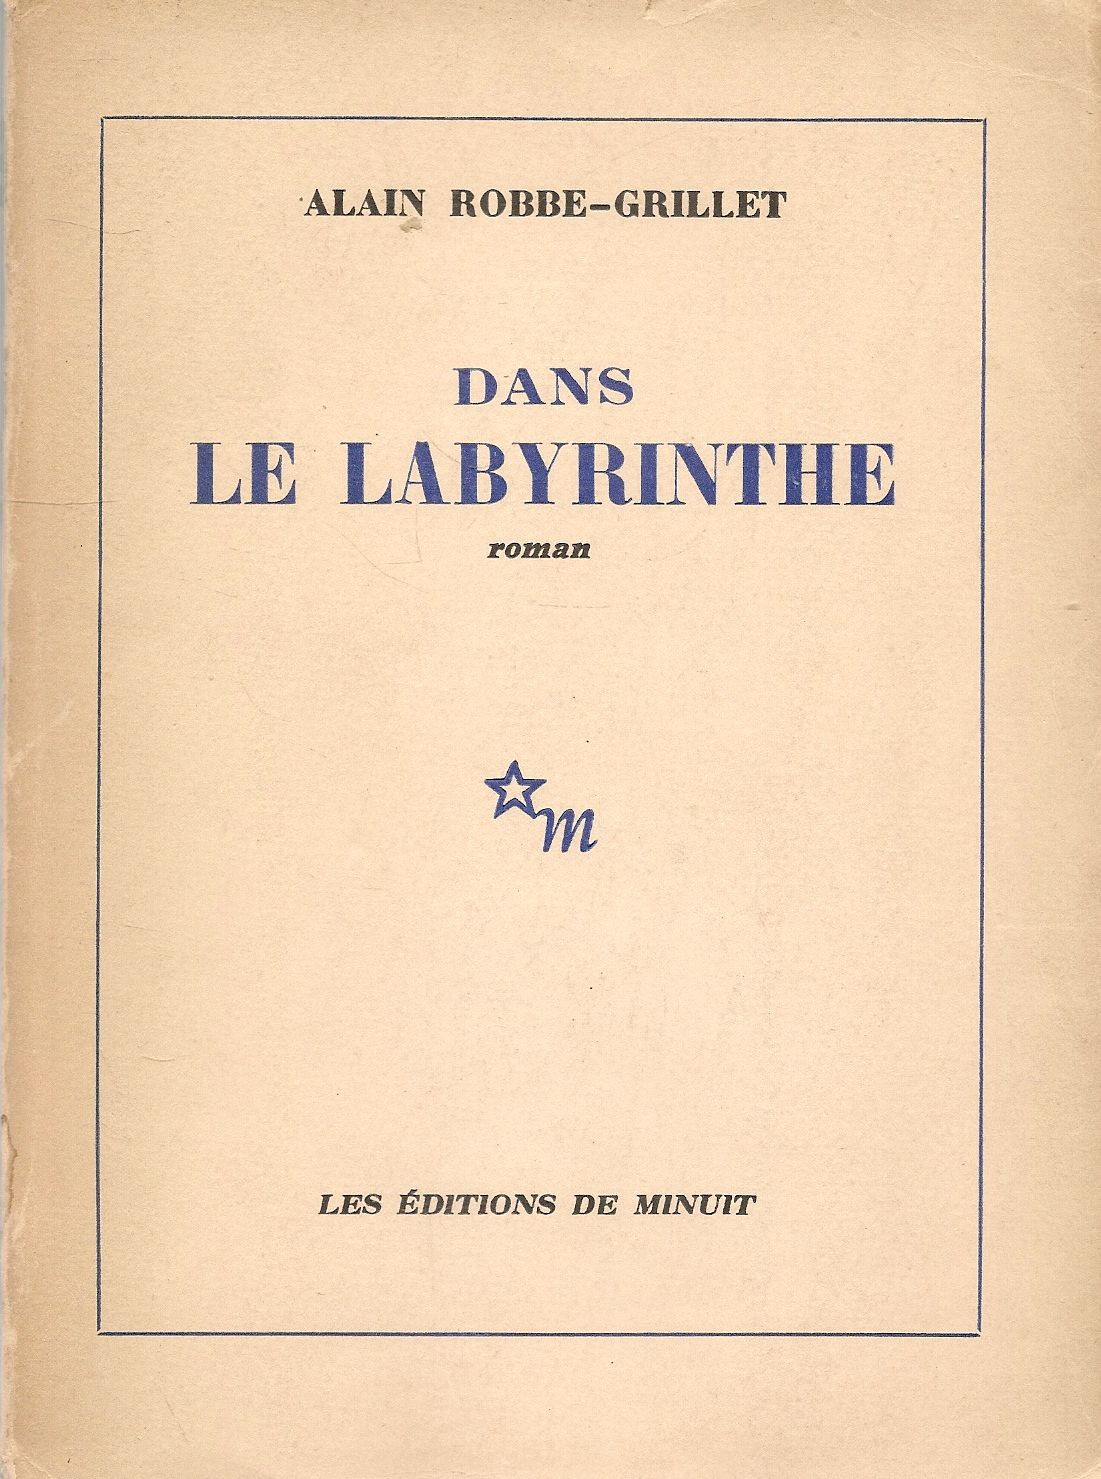 DANS LA LABIRYNTHE - ALAIN ROBBE-GRILLET - FRENCH TEXT